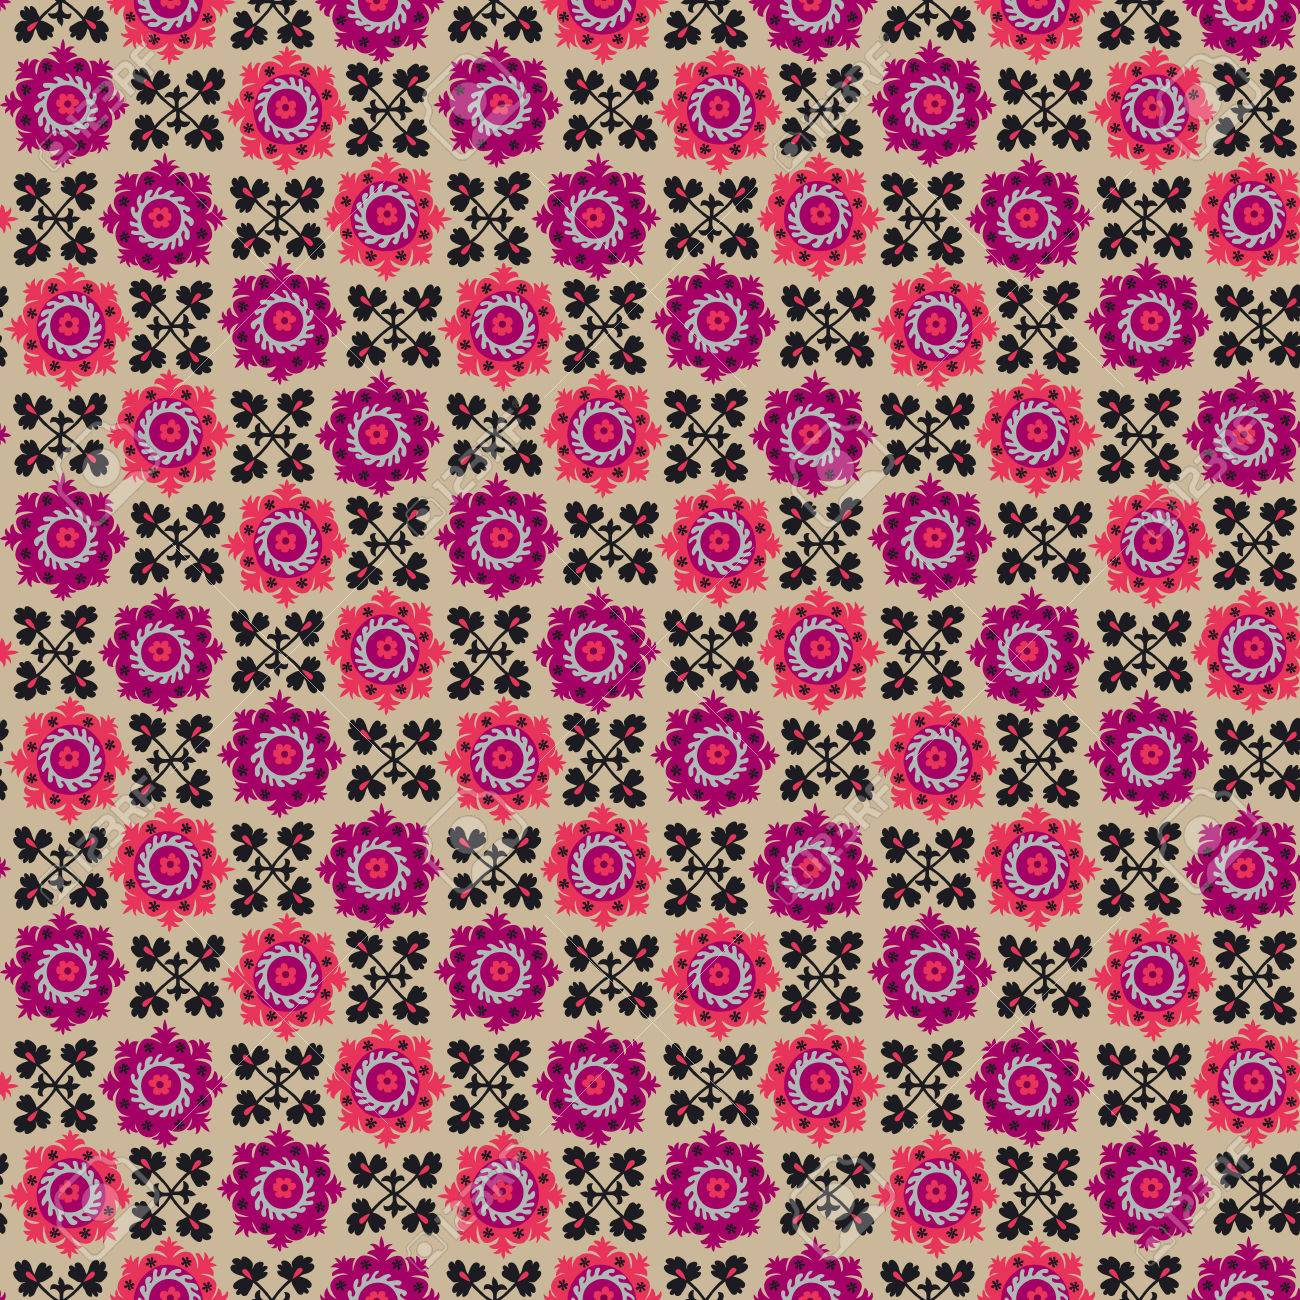 Asian Carpet Traditional Asian Carpet Embroidery Suzanne In Pink And Black